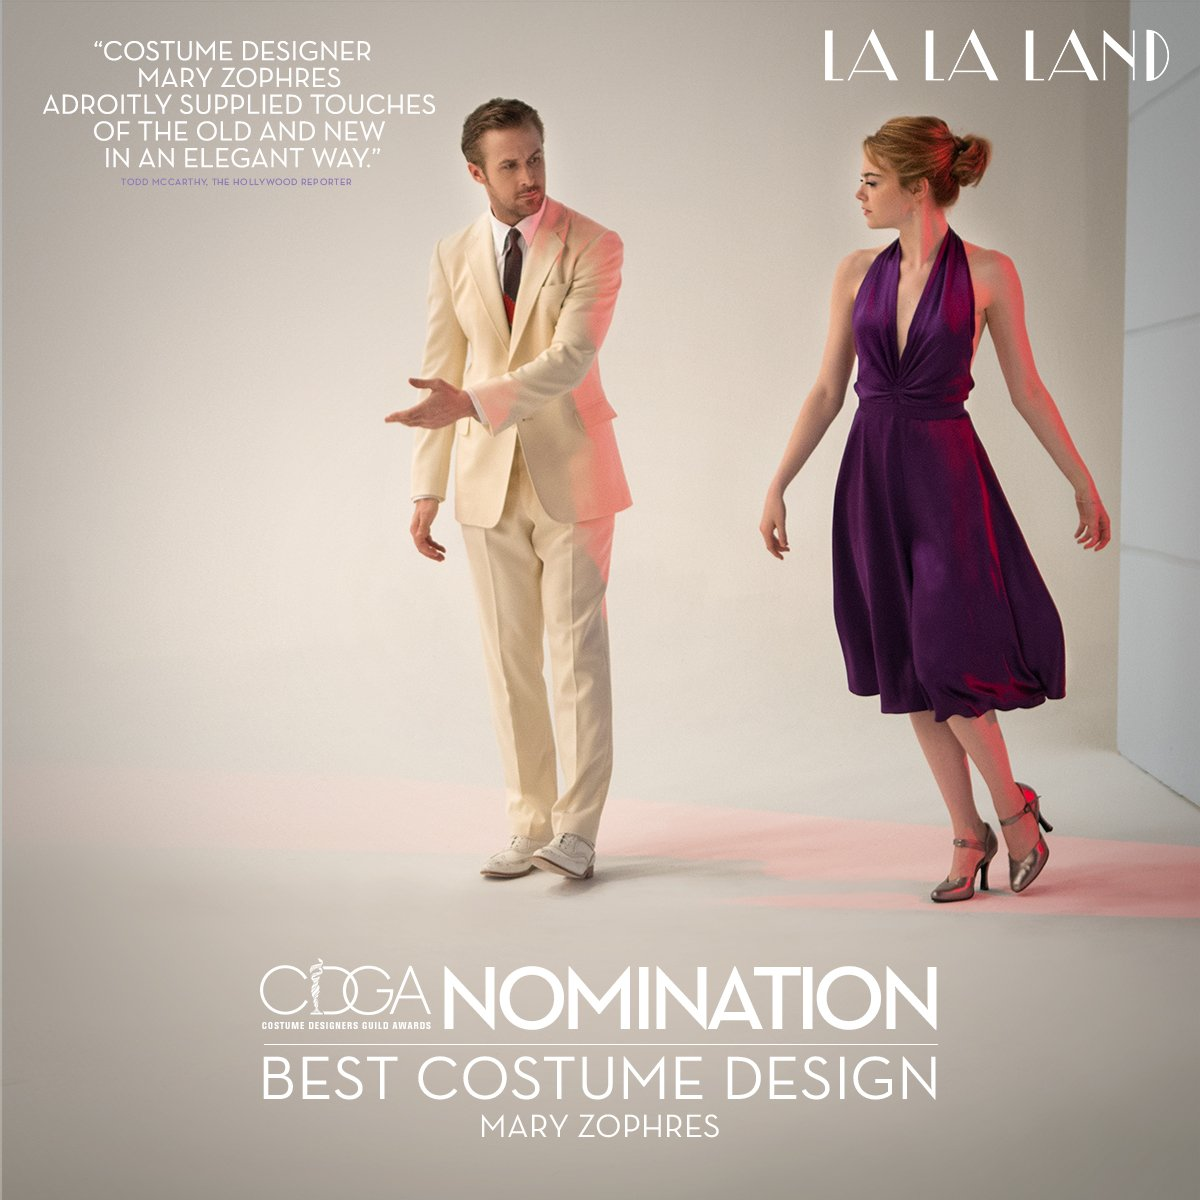 La La Land On Twitter Congratulations To Lalaland S Mary Zophres On Her Costume Designers Guild Awards Nomination For Excellence In Contemporary Film Https T Co Zlyn4vvvrl